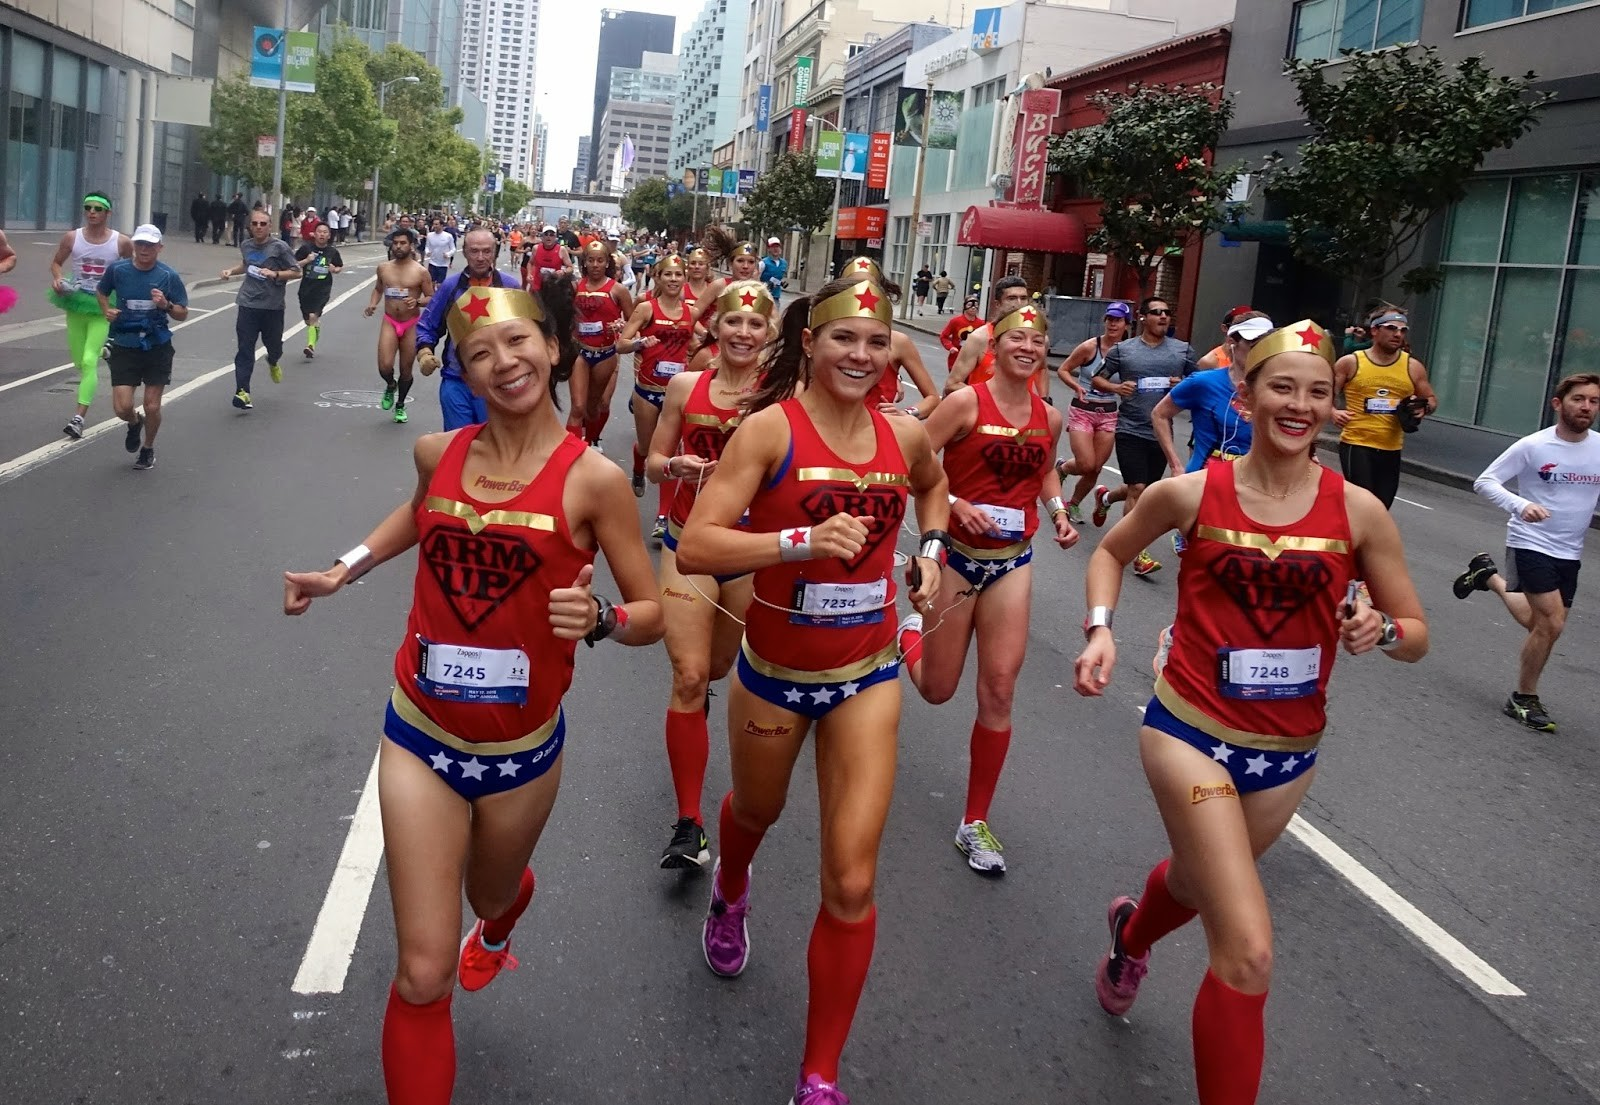 The crazy Bay To Breakers 12k with it's costumed runners, elites and centipedes is May 20